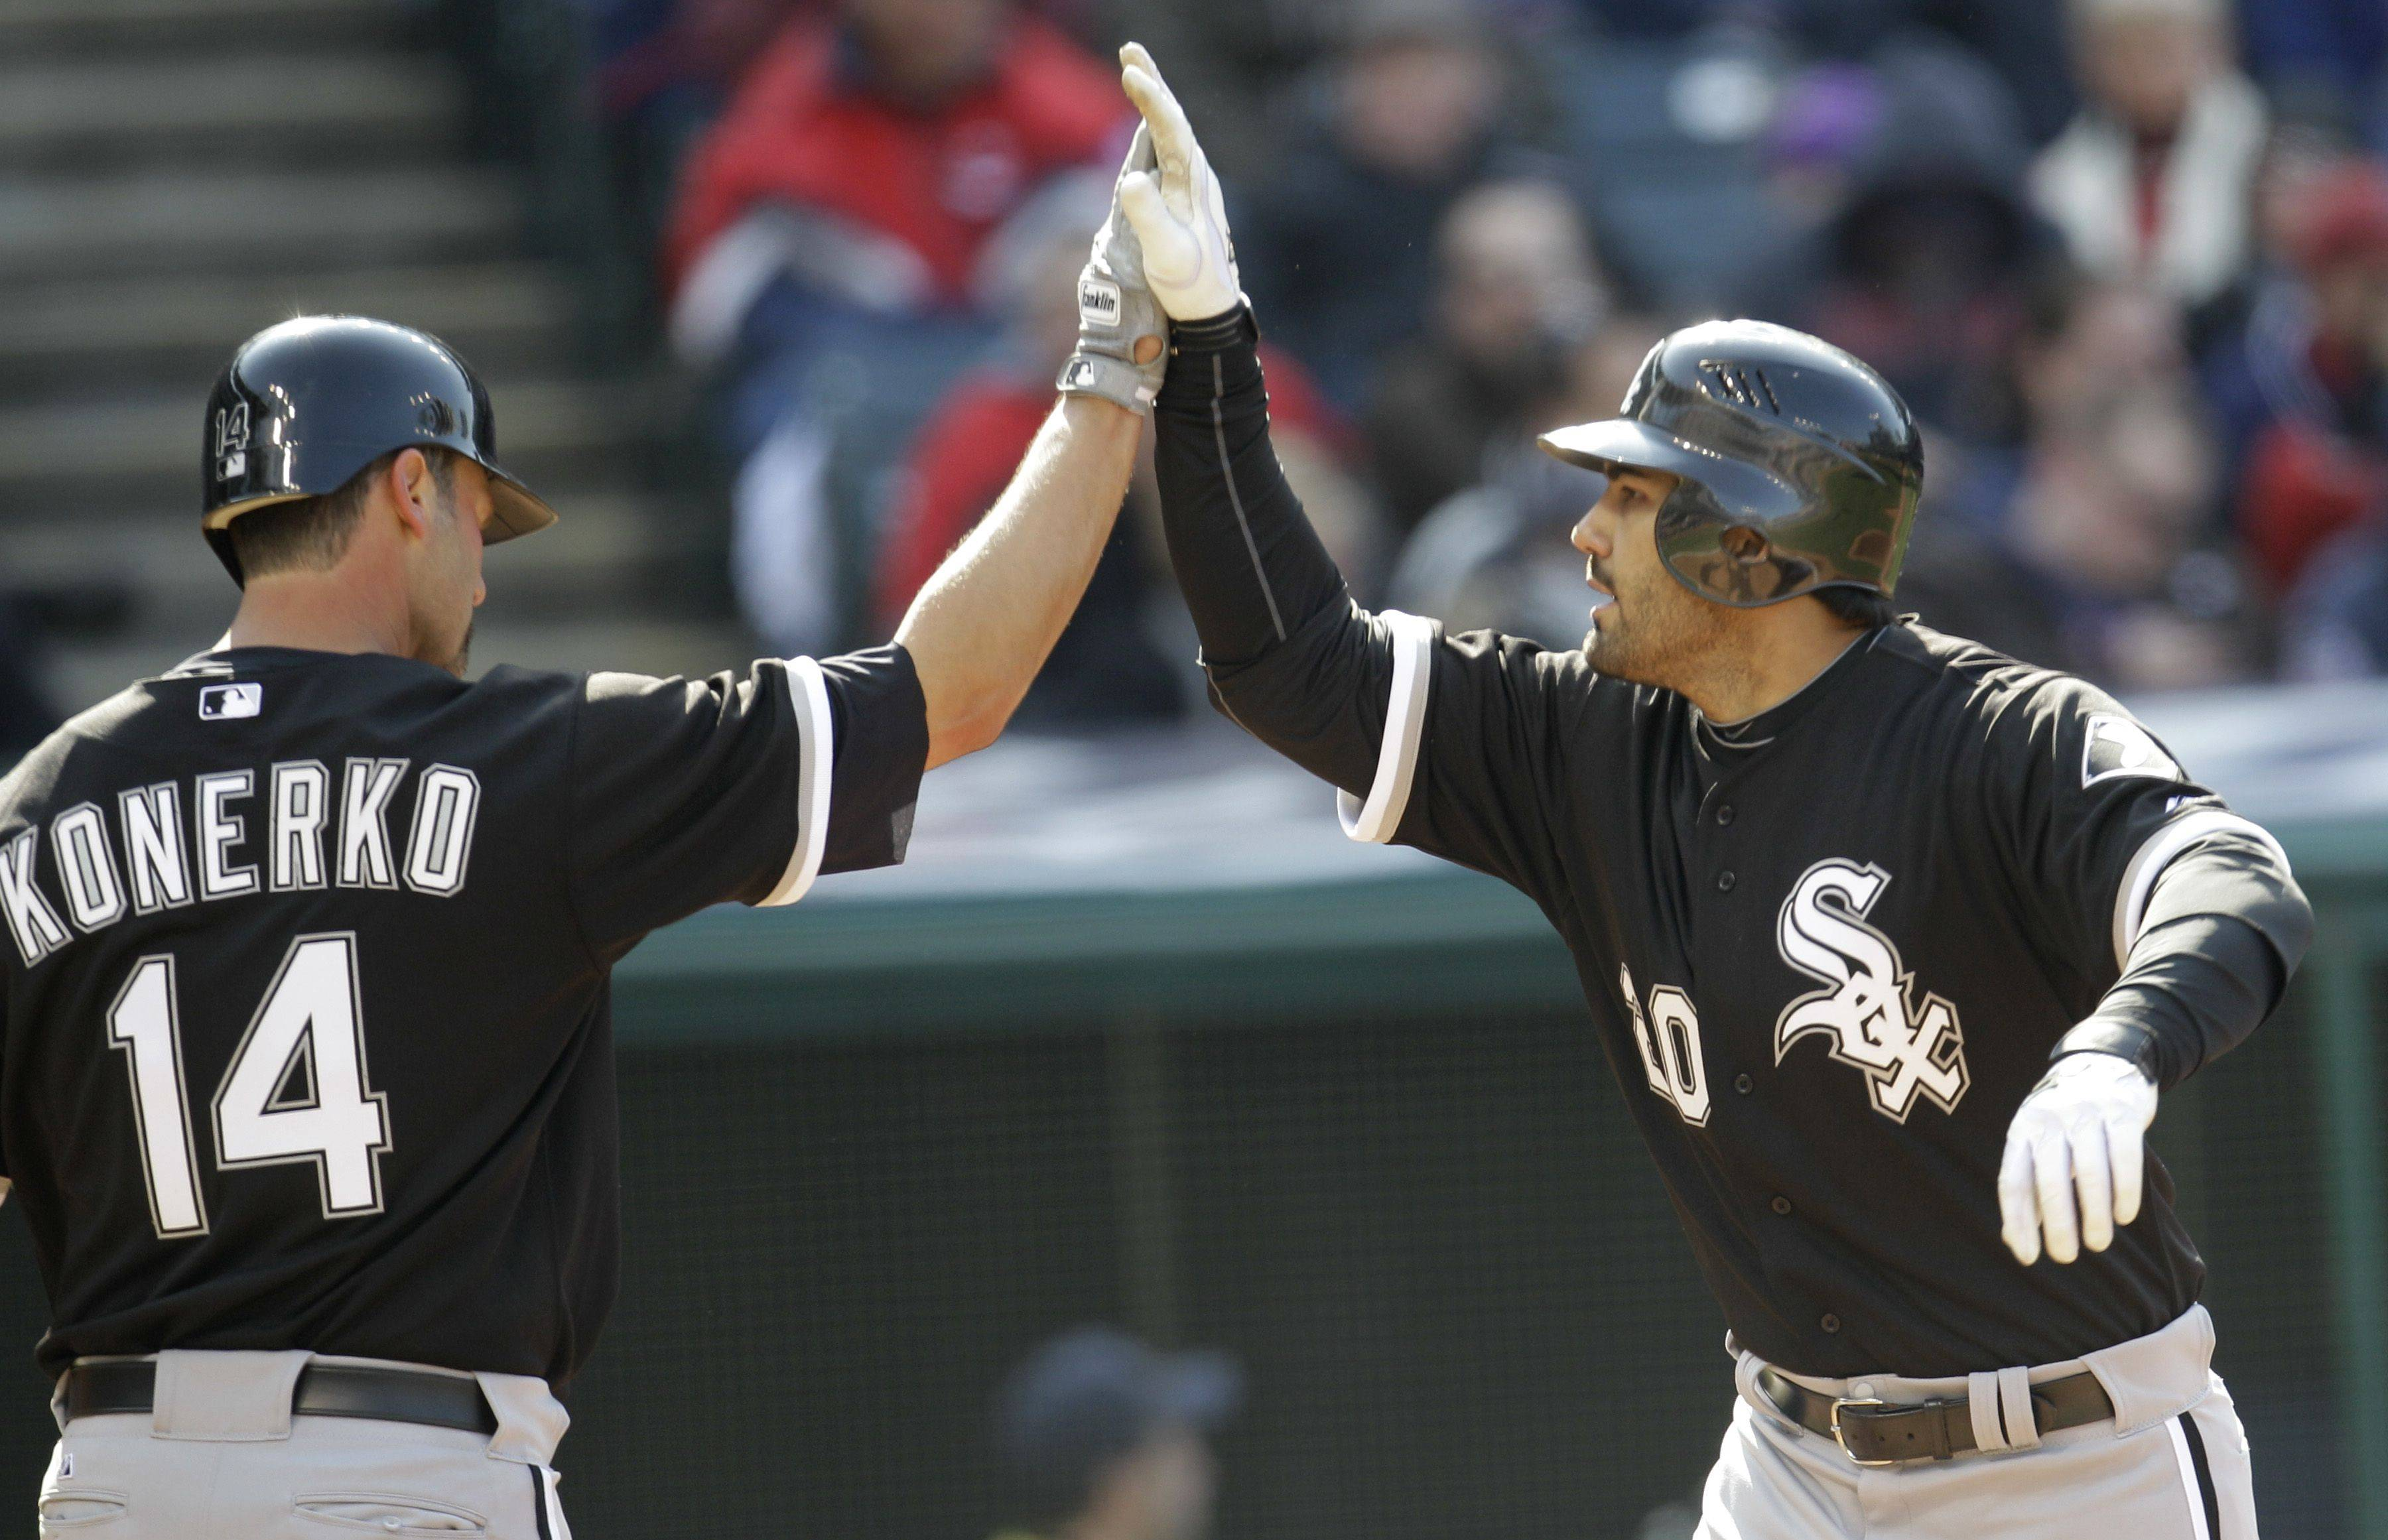 Carlos Quentin, right, is congratulated by Paul Konerko after Quentin hit a 2-run home run in the third inning against the Cleveland Indians on Friday in Cleveland.